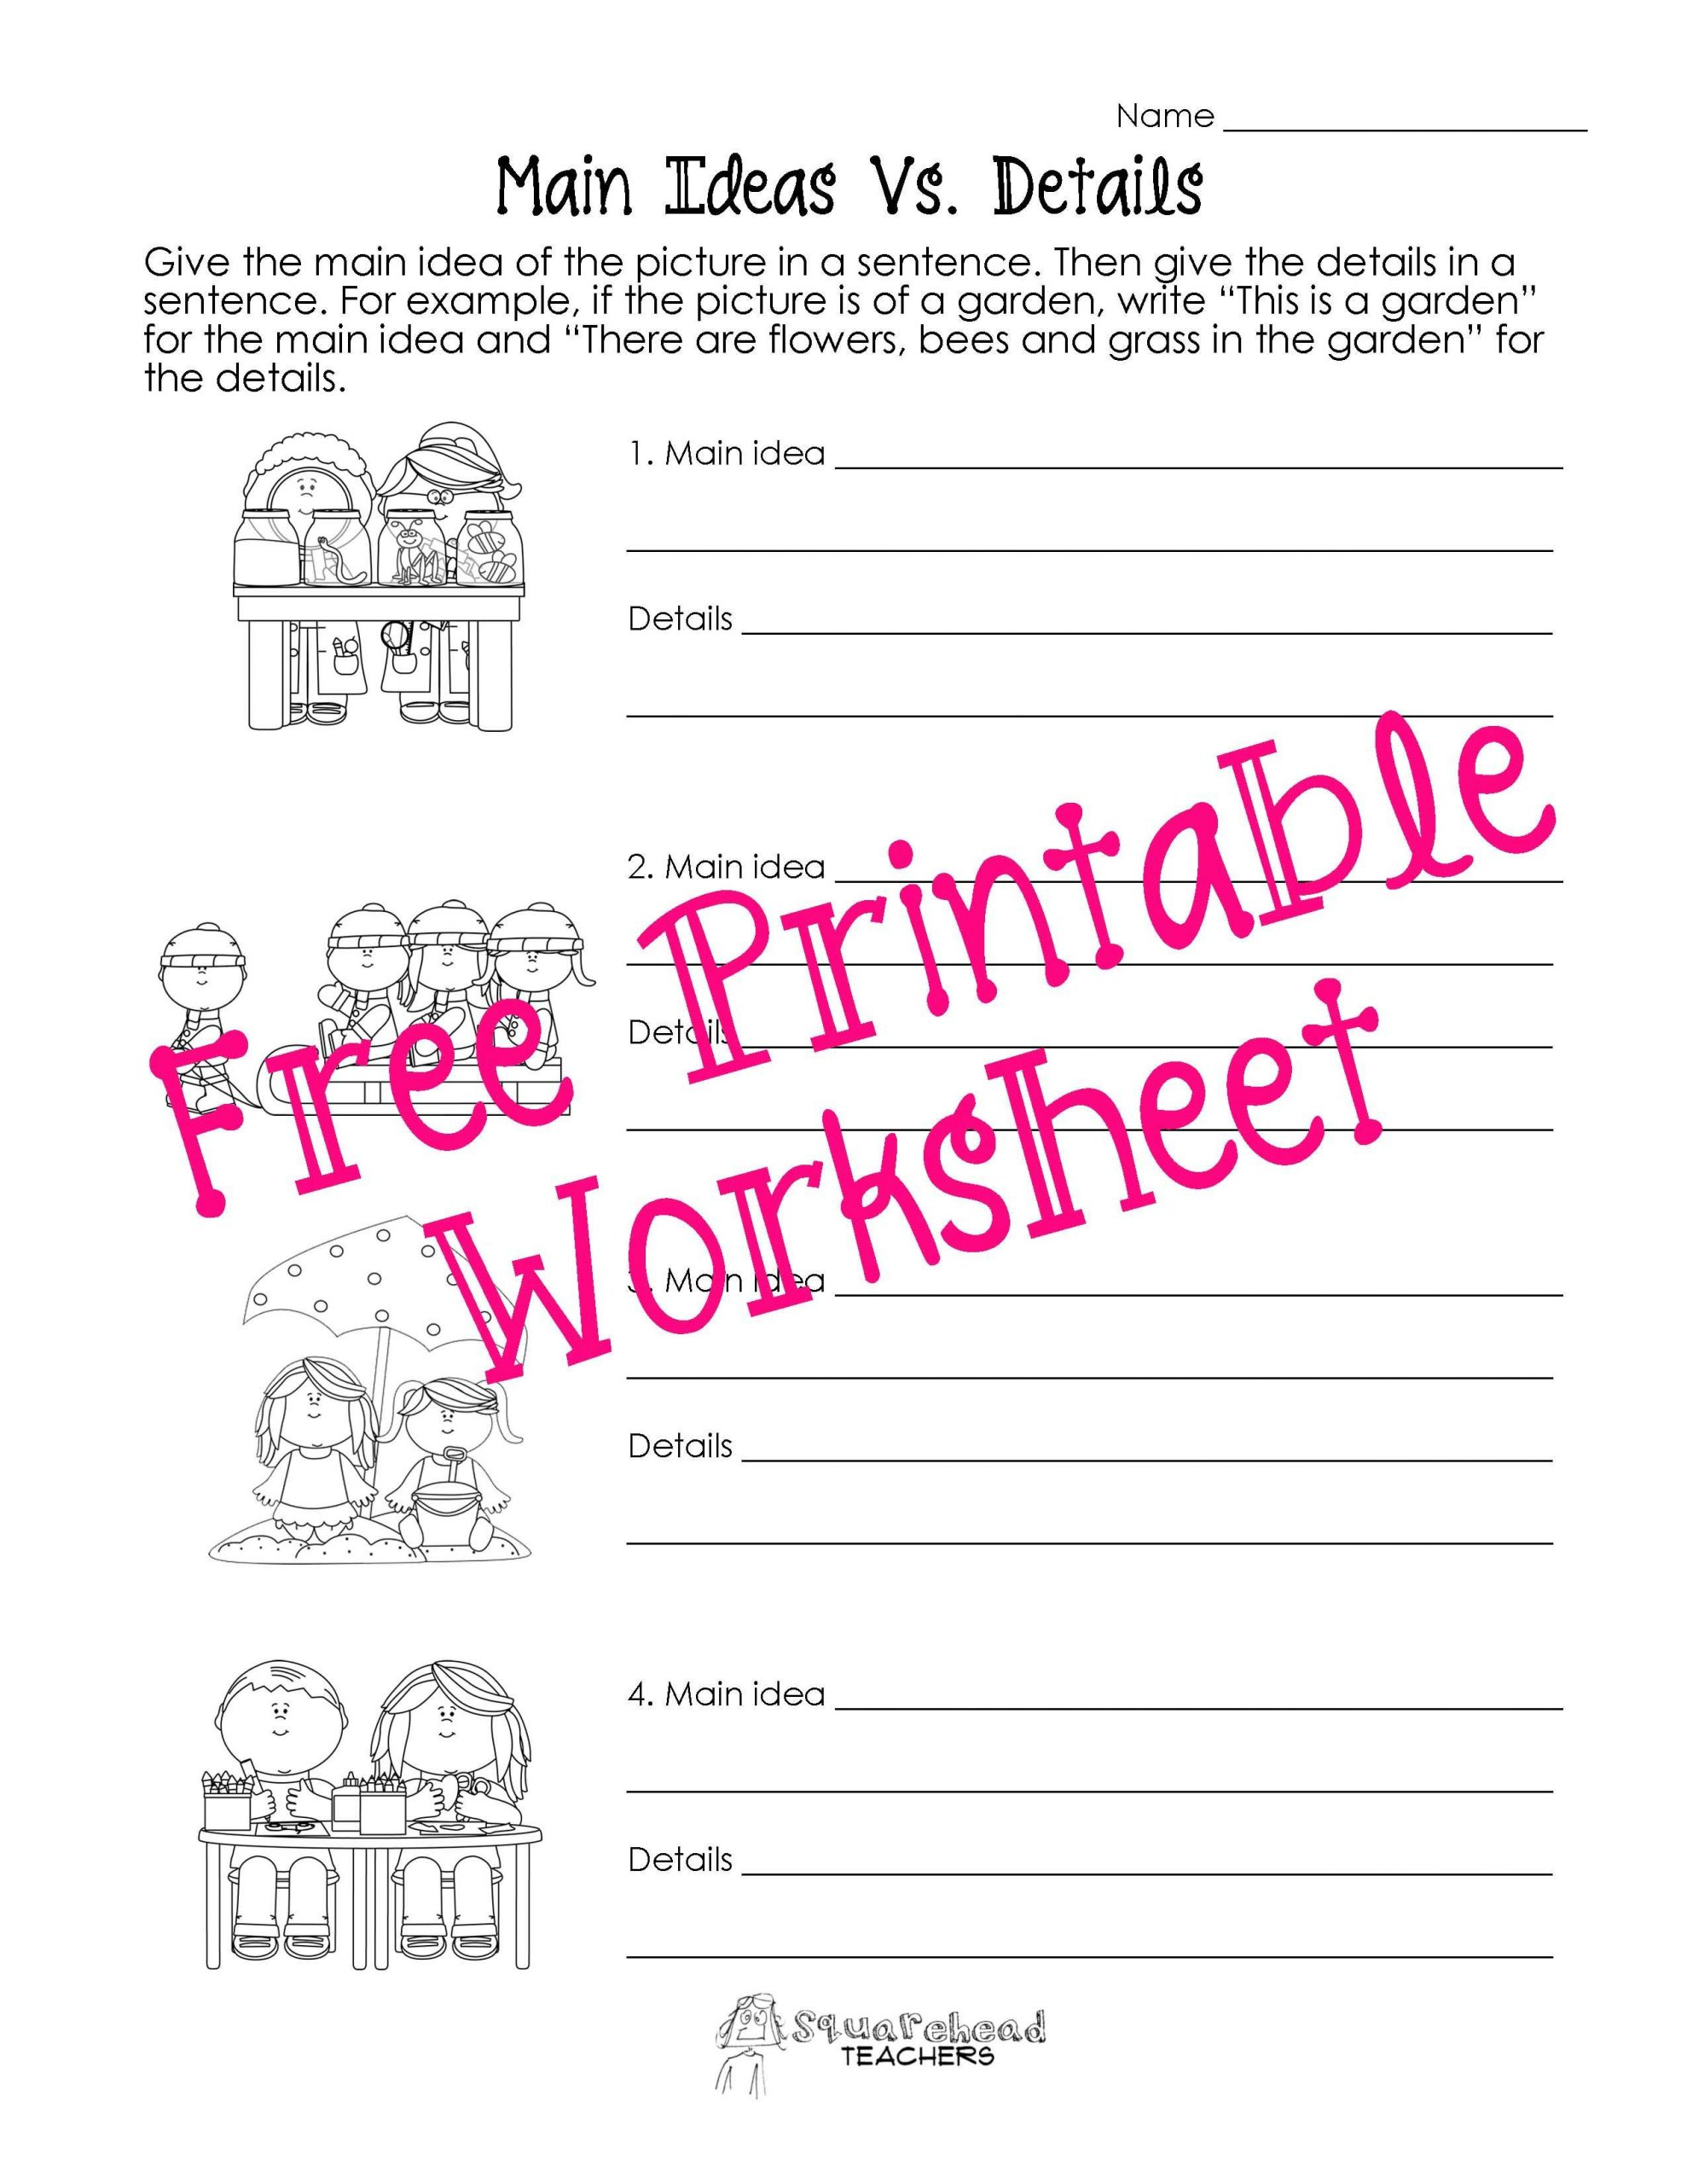 5th Grade Main Idea Worksheets Squarehead Teachers Main Idea Vs Details Worksheets Genius